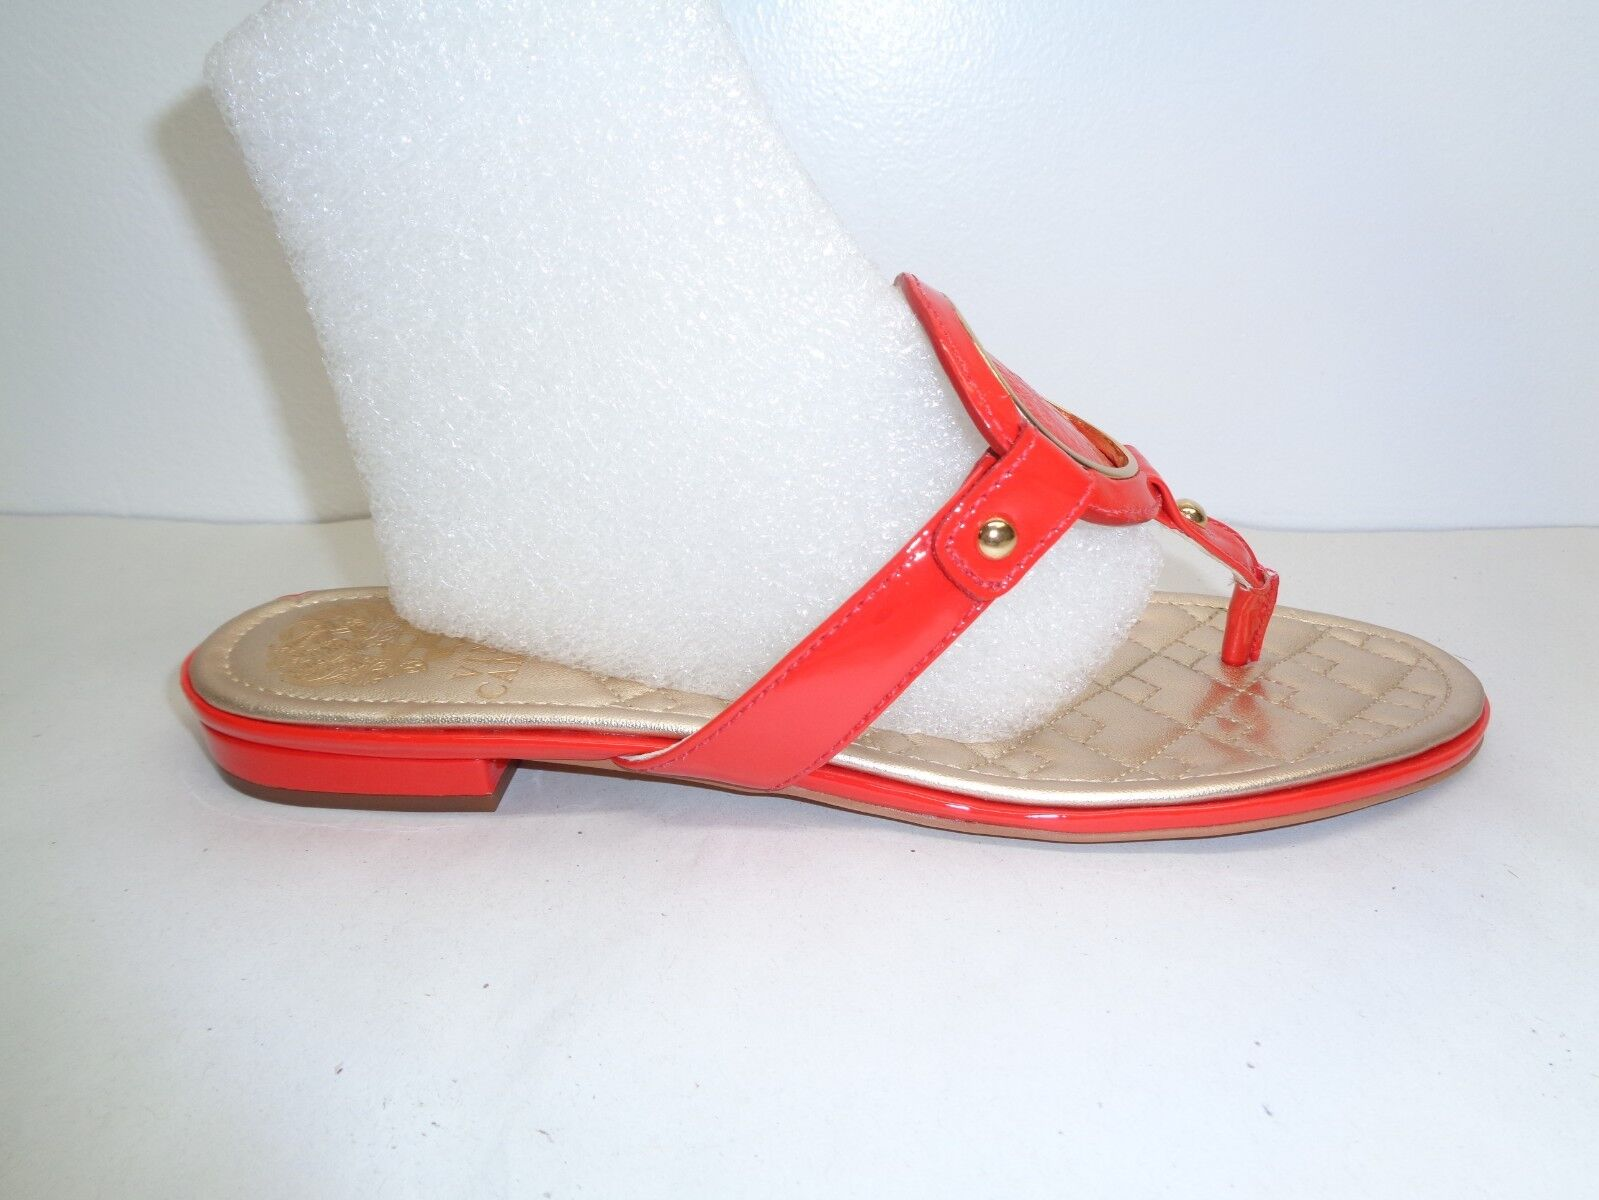 Vince Camuto Size 6.5 M BRAIDA Red Leather Thong Sandals New Womens shoes